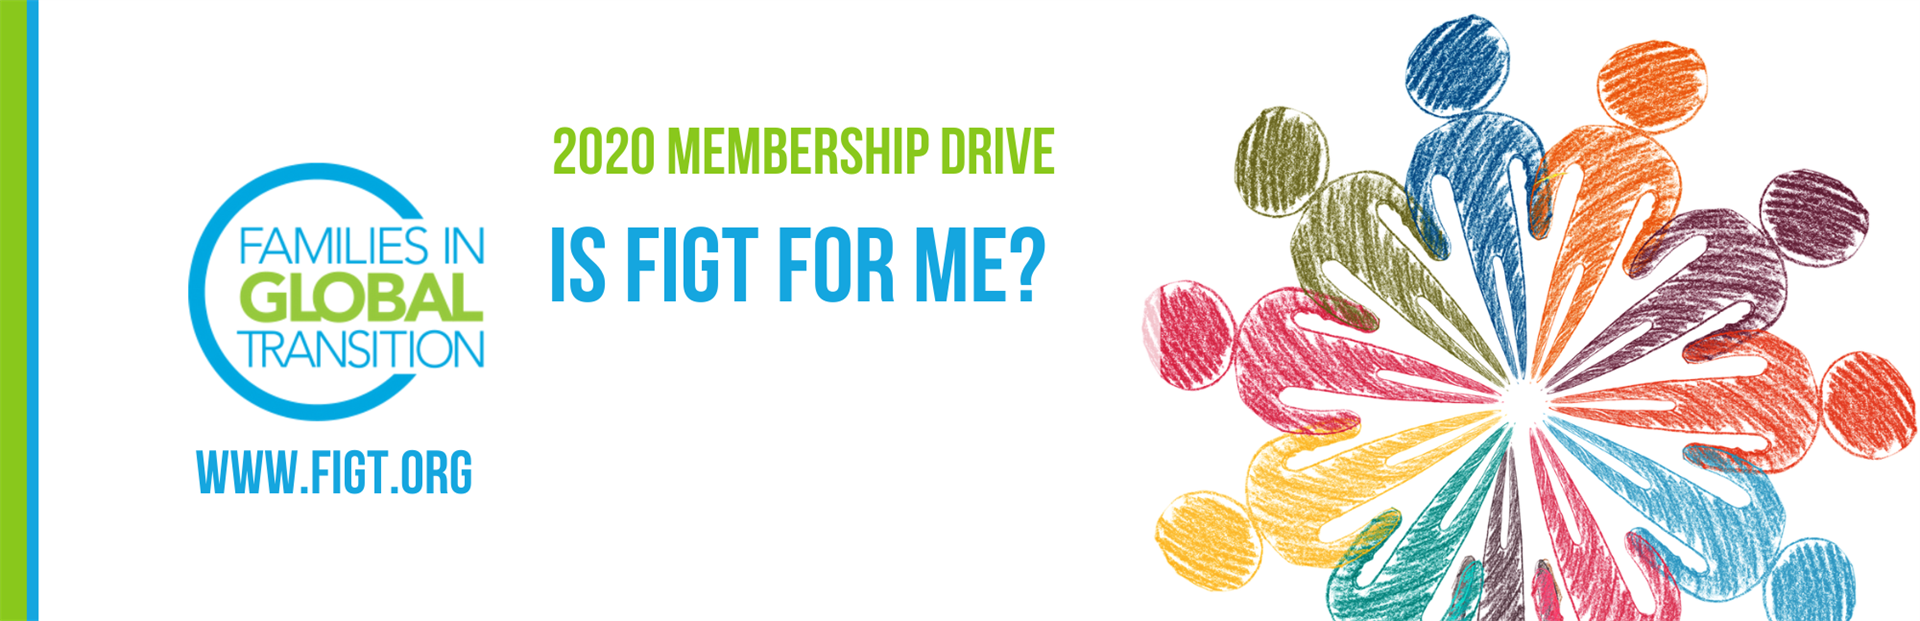 blog title: Is FIGT for me? 2020 Membership Drive